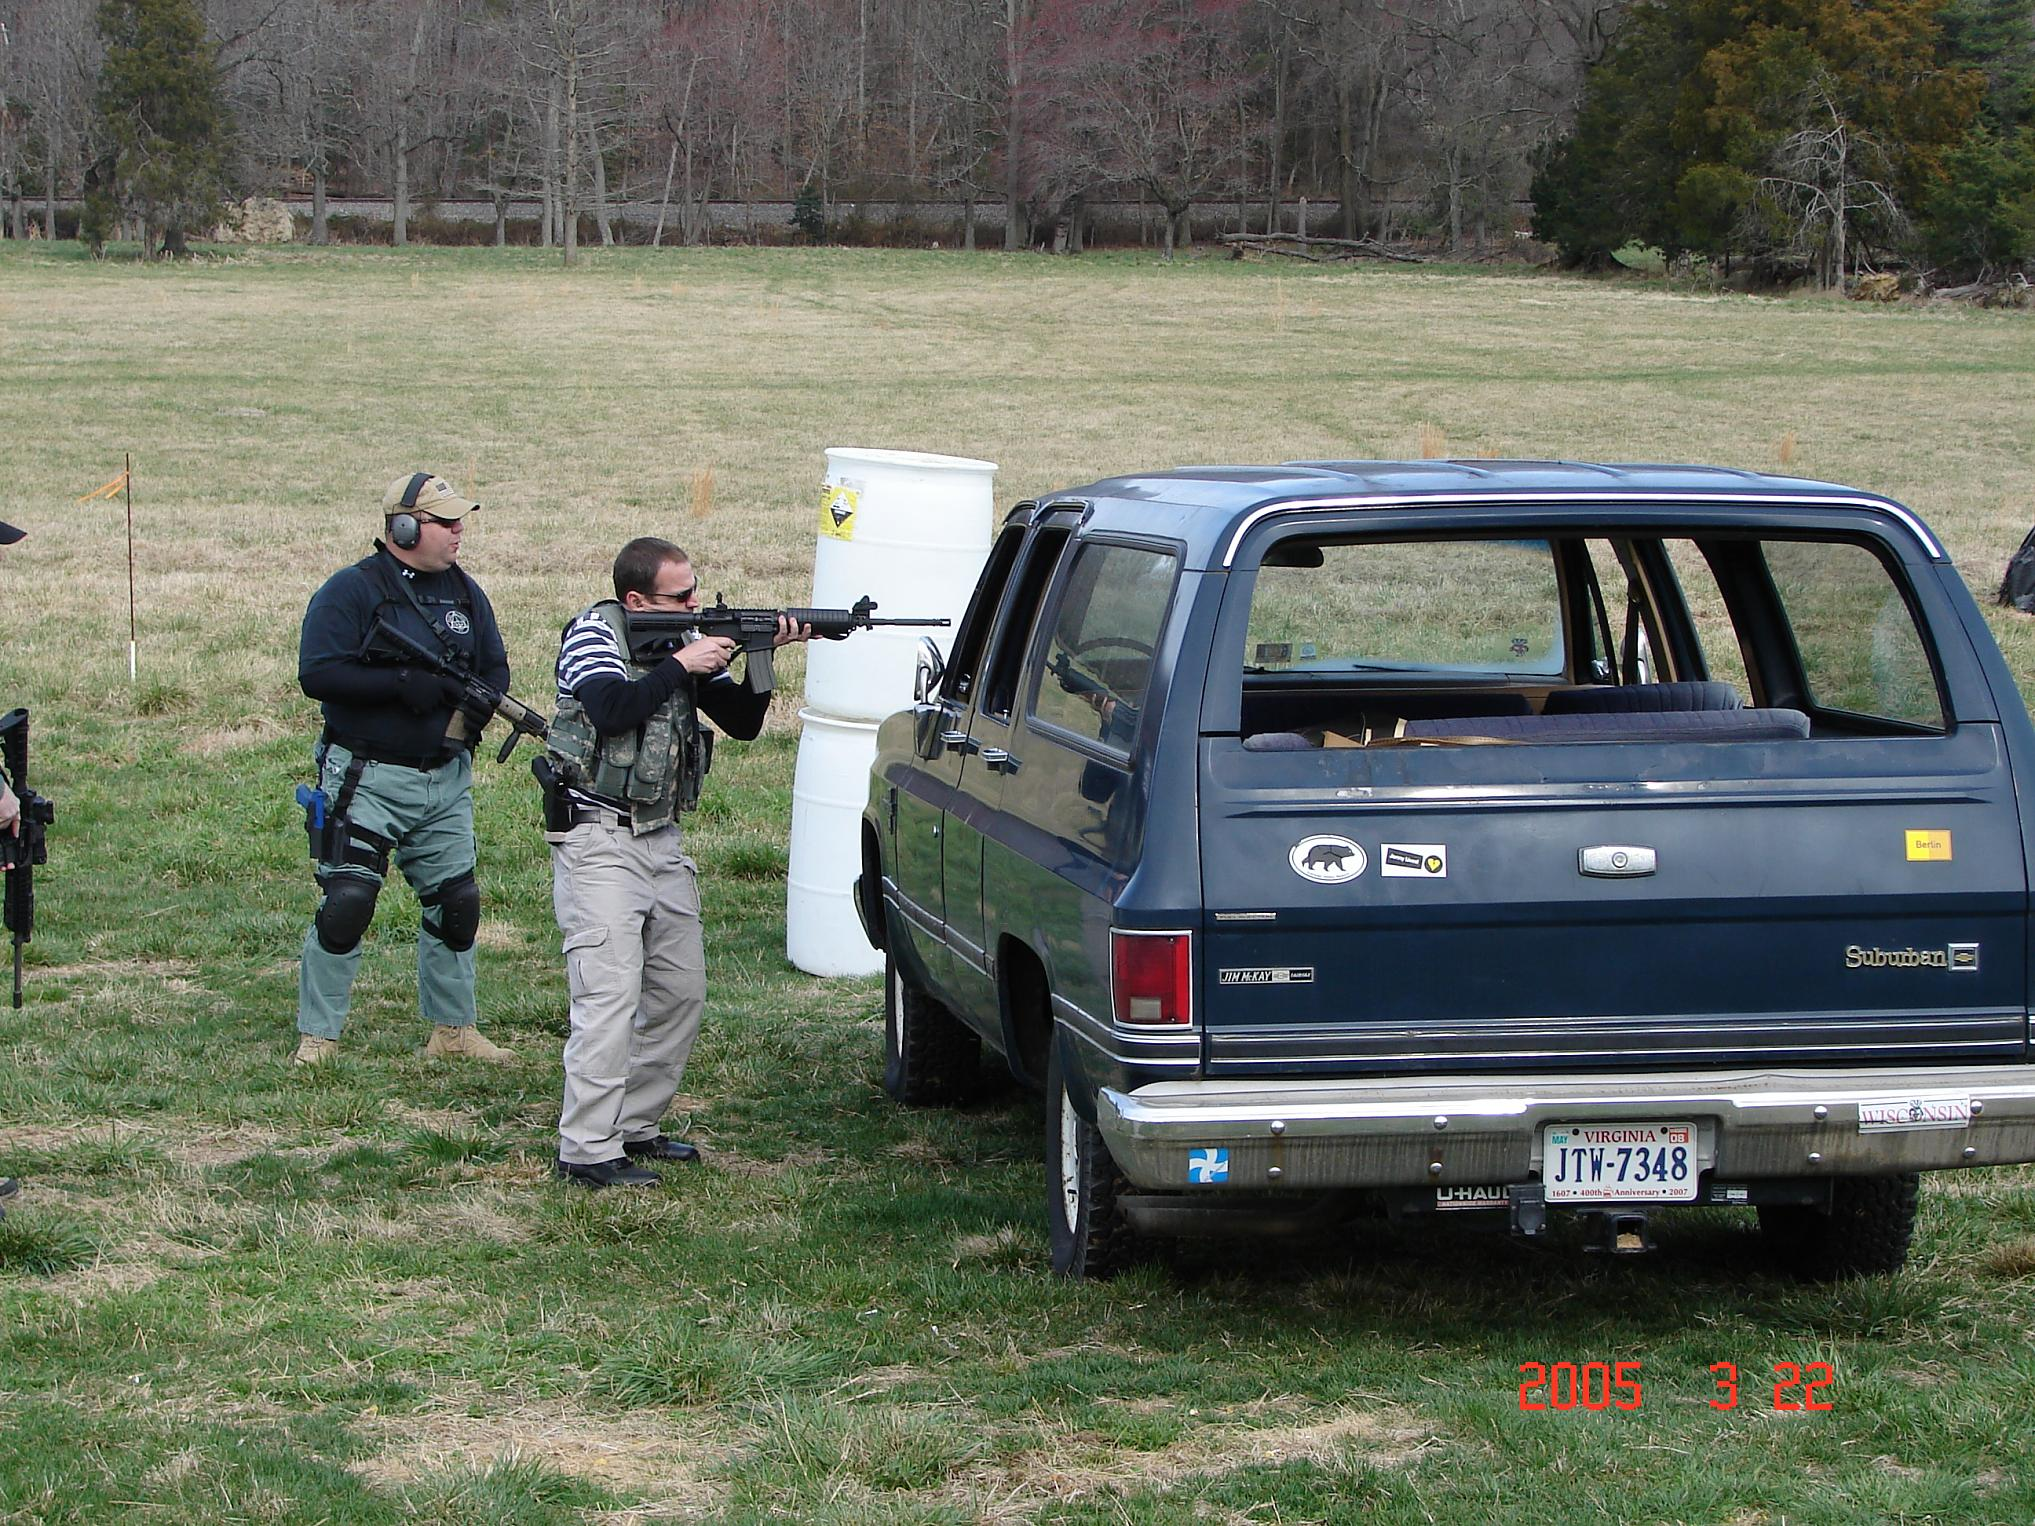 Pictures from the PTTA M4/ Tactical Carbine Course-099.jpg